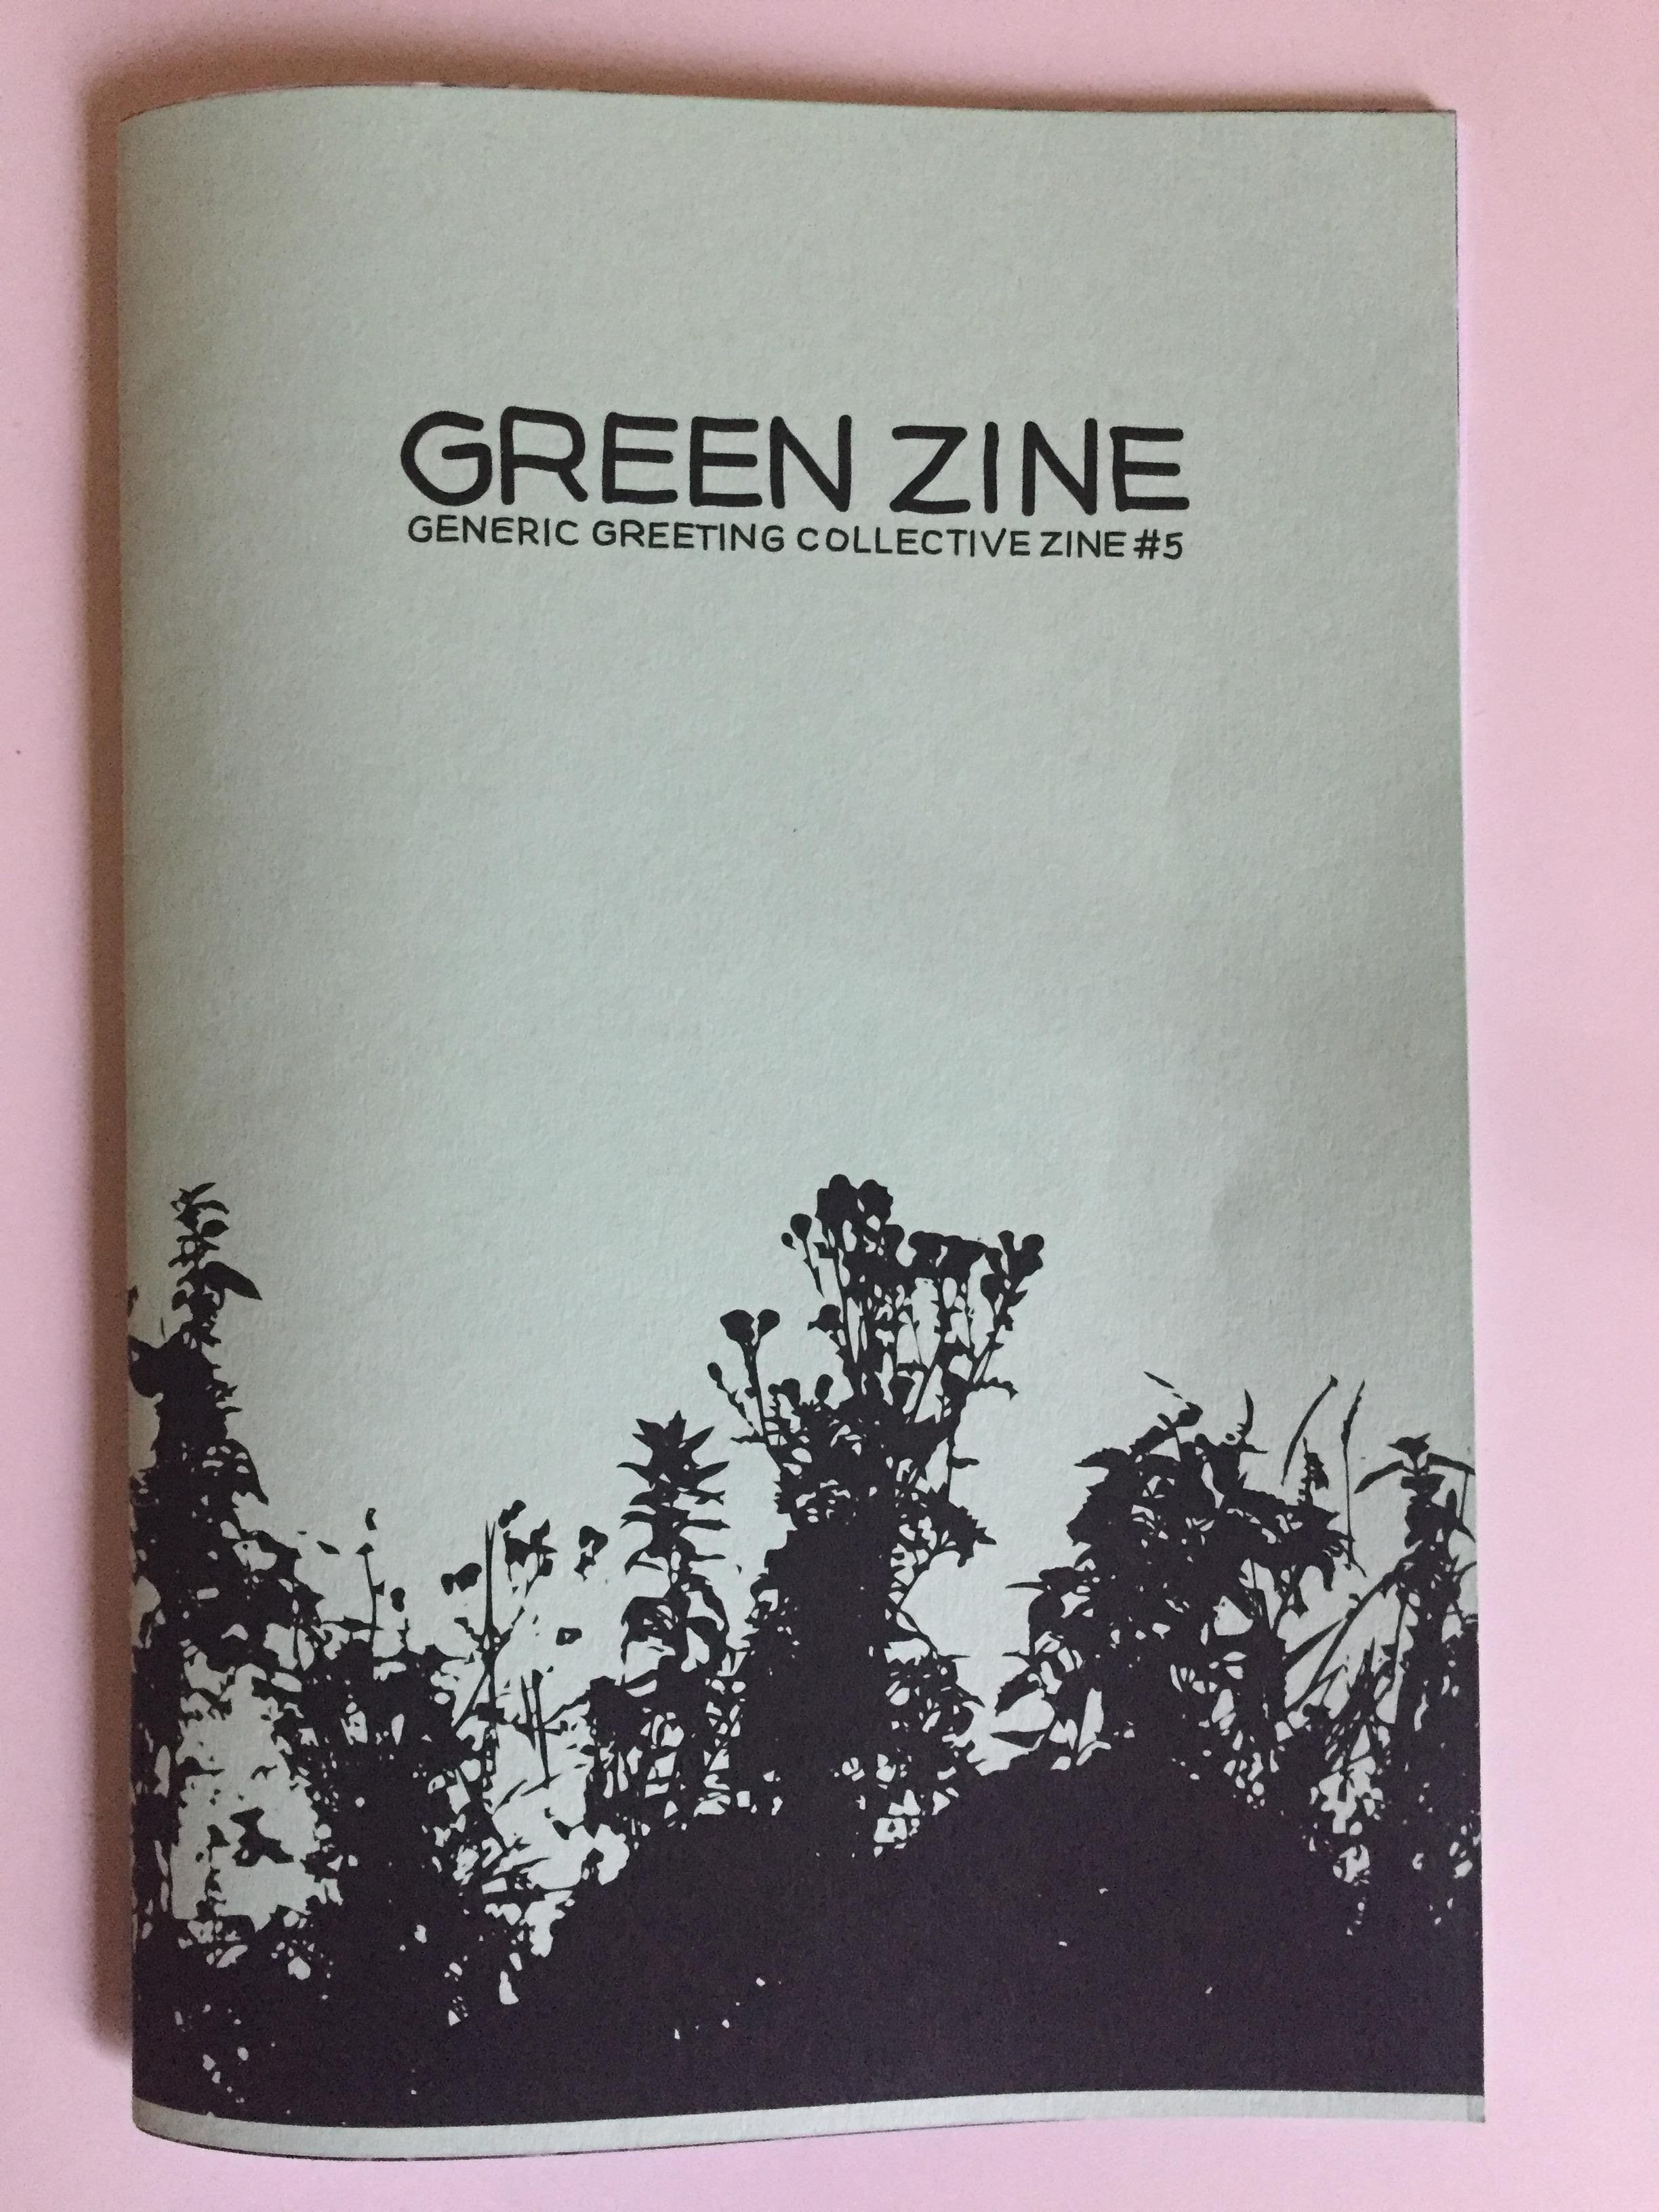 'Green Zine: Generic Greeting Collective Zine #5'